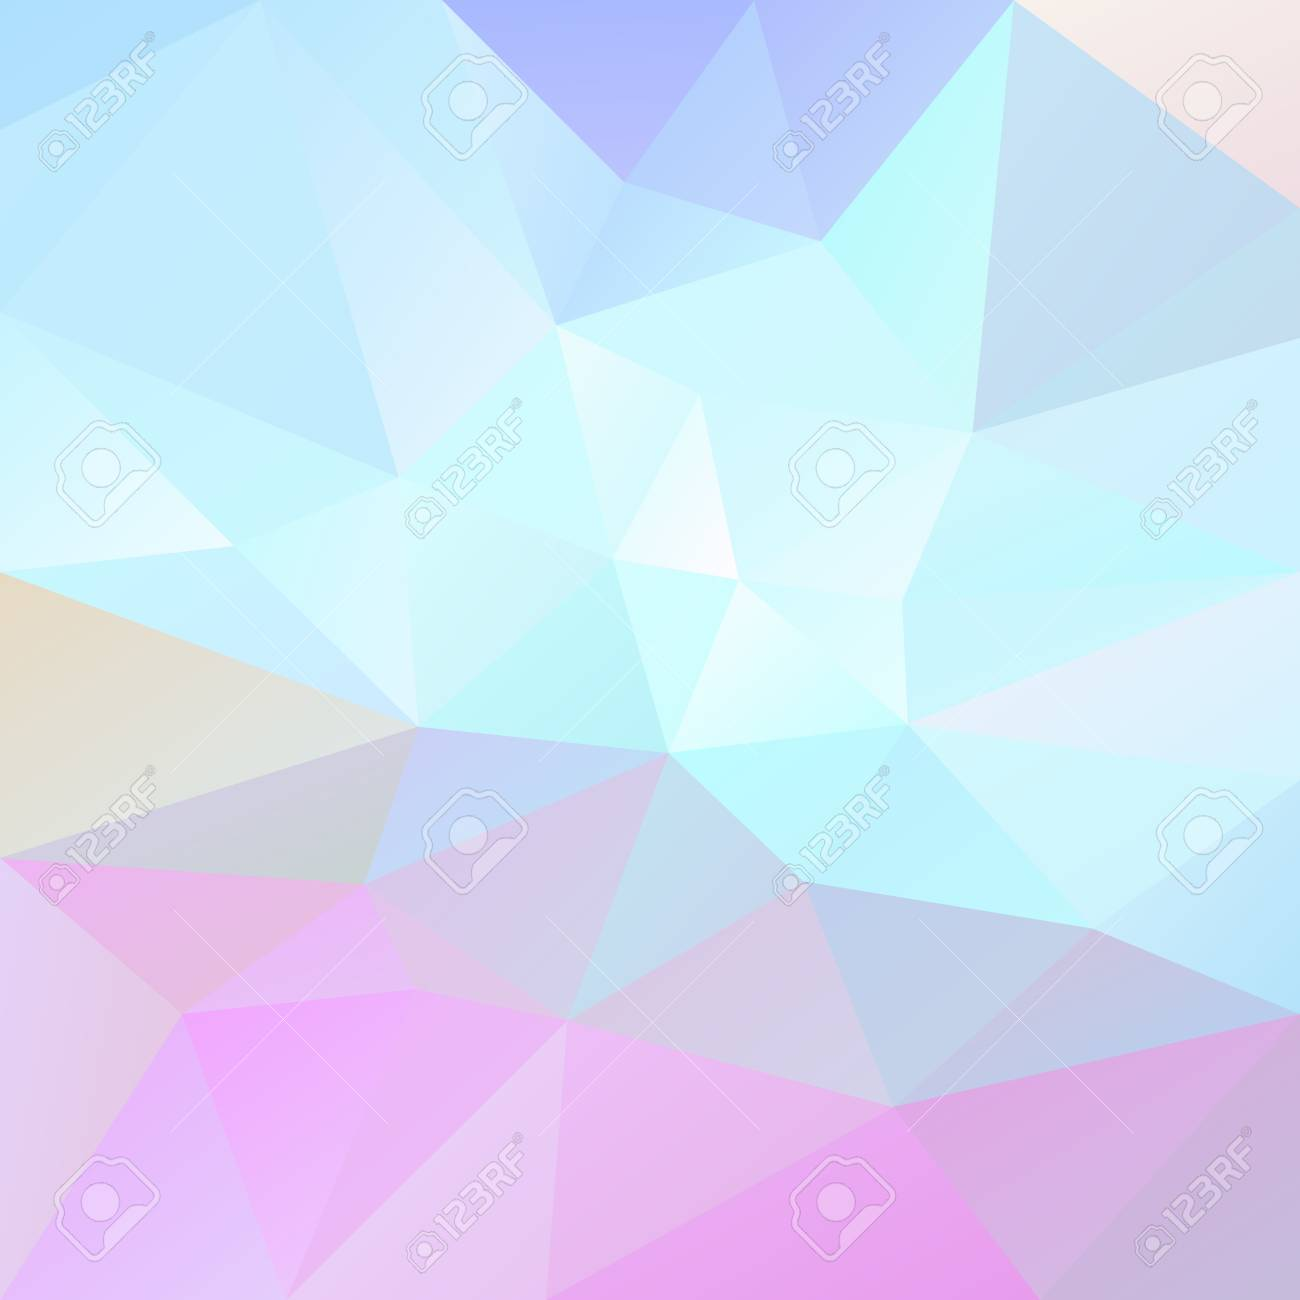 Vector Abstract Irregular Polygonal Background Cute Light Pastel Royalty Free Cliparts Vectors And Stock Illustration Image 95710537